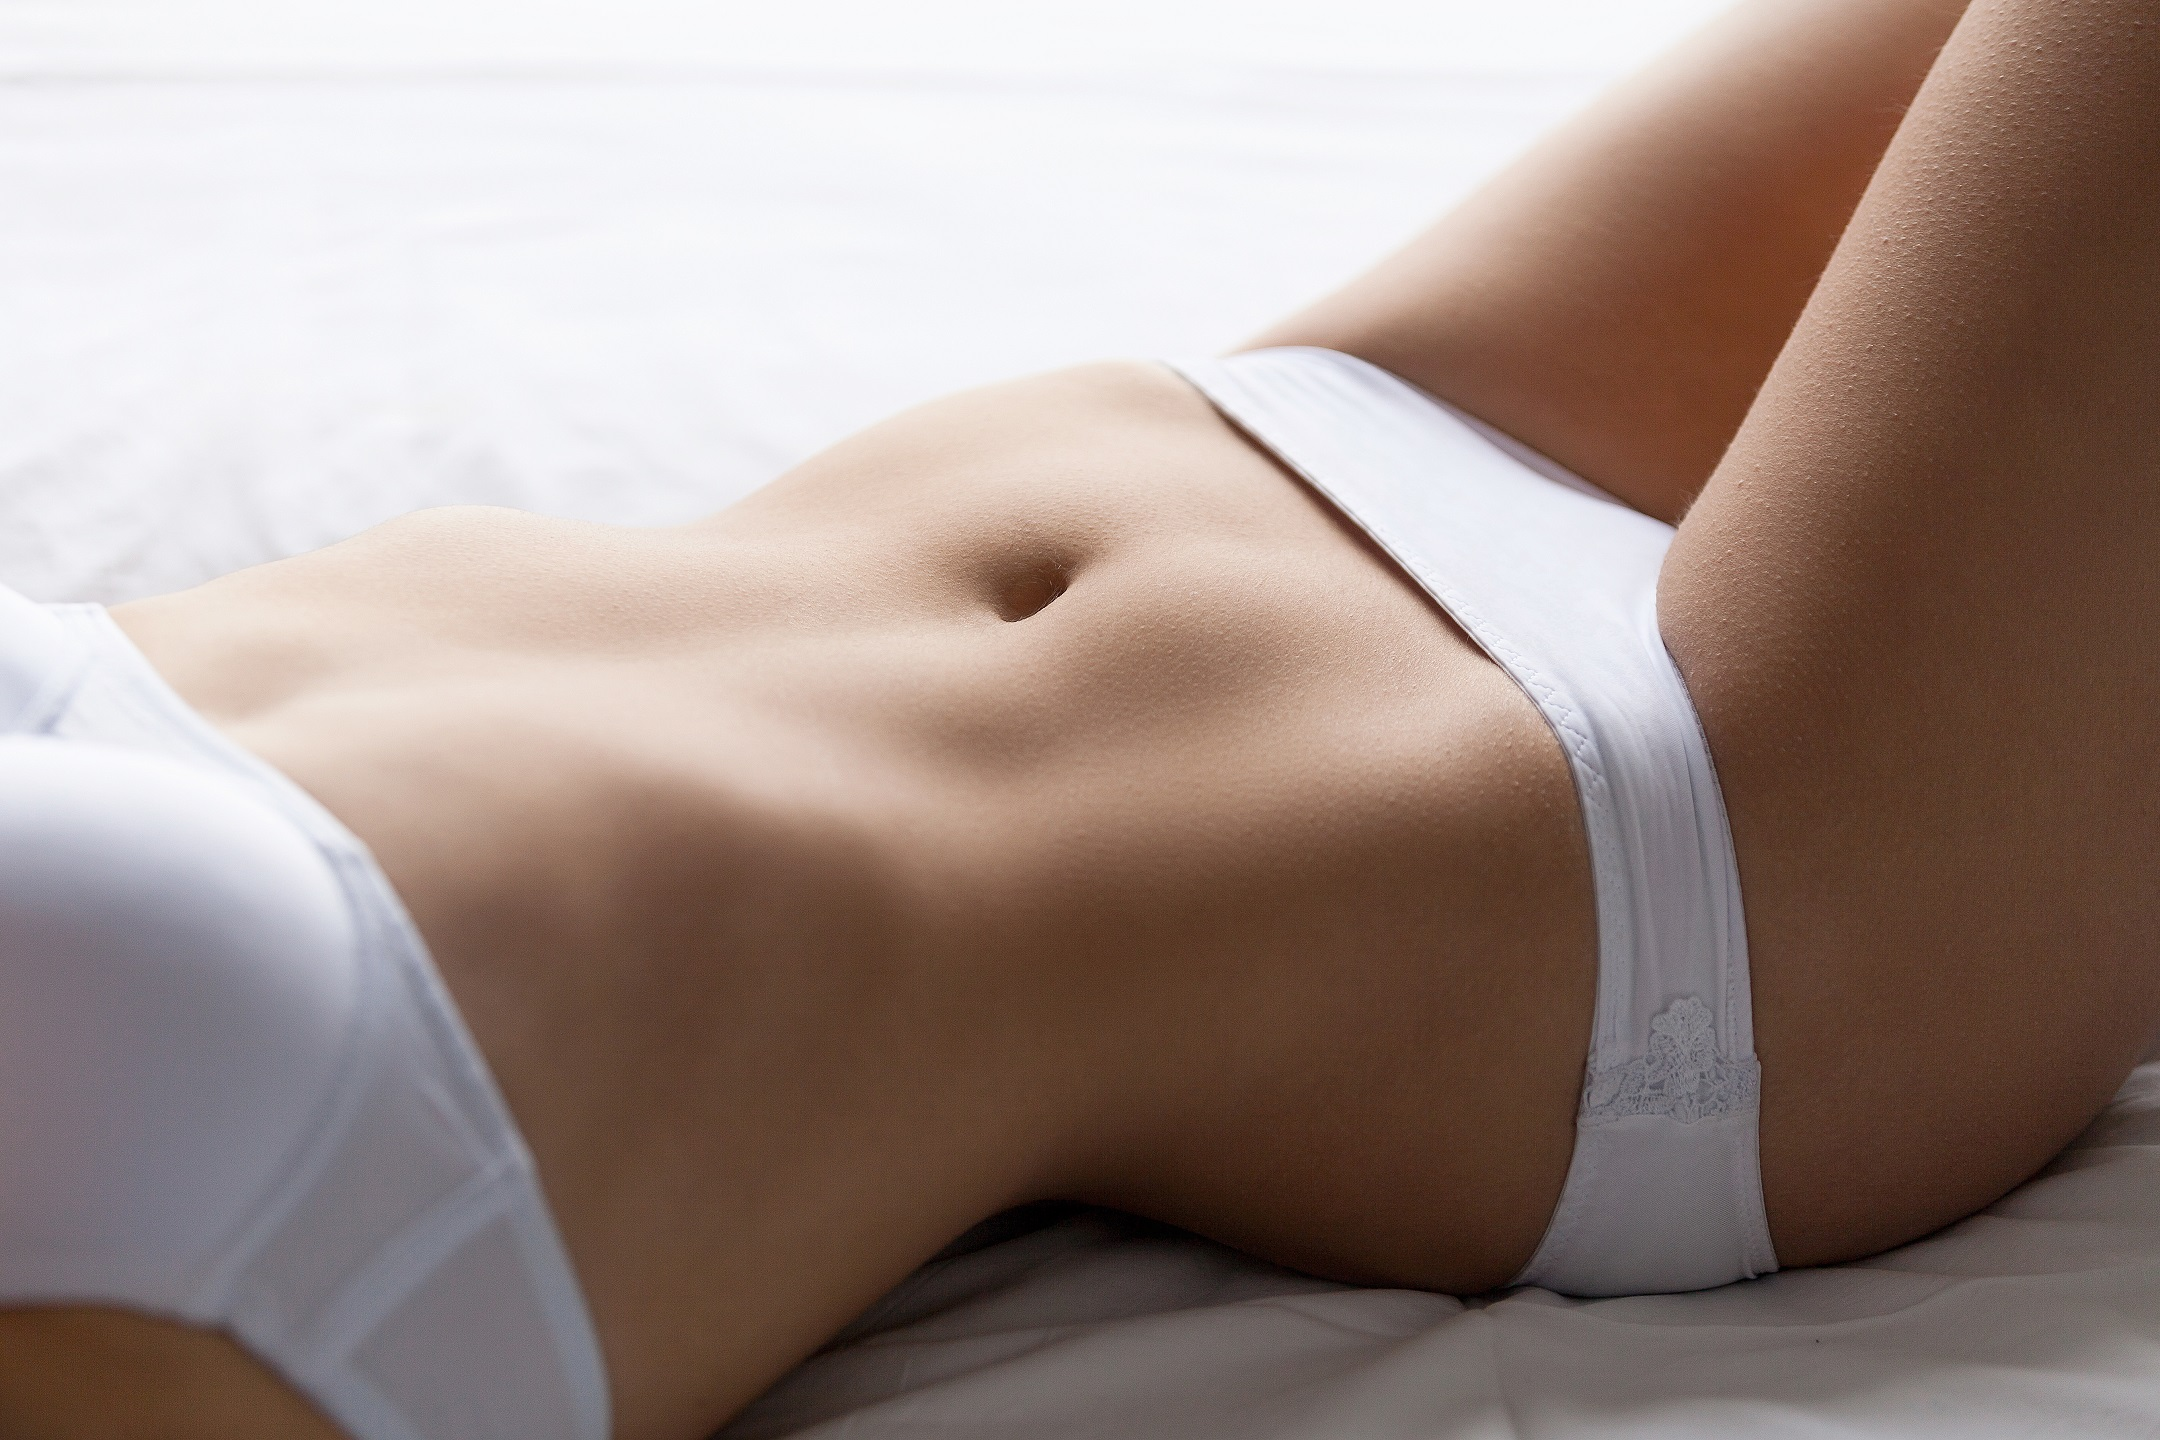 Spacing Your CoolTone® and CoolSculpting® Procedures for Maximum Effect